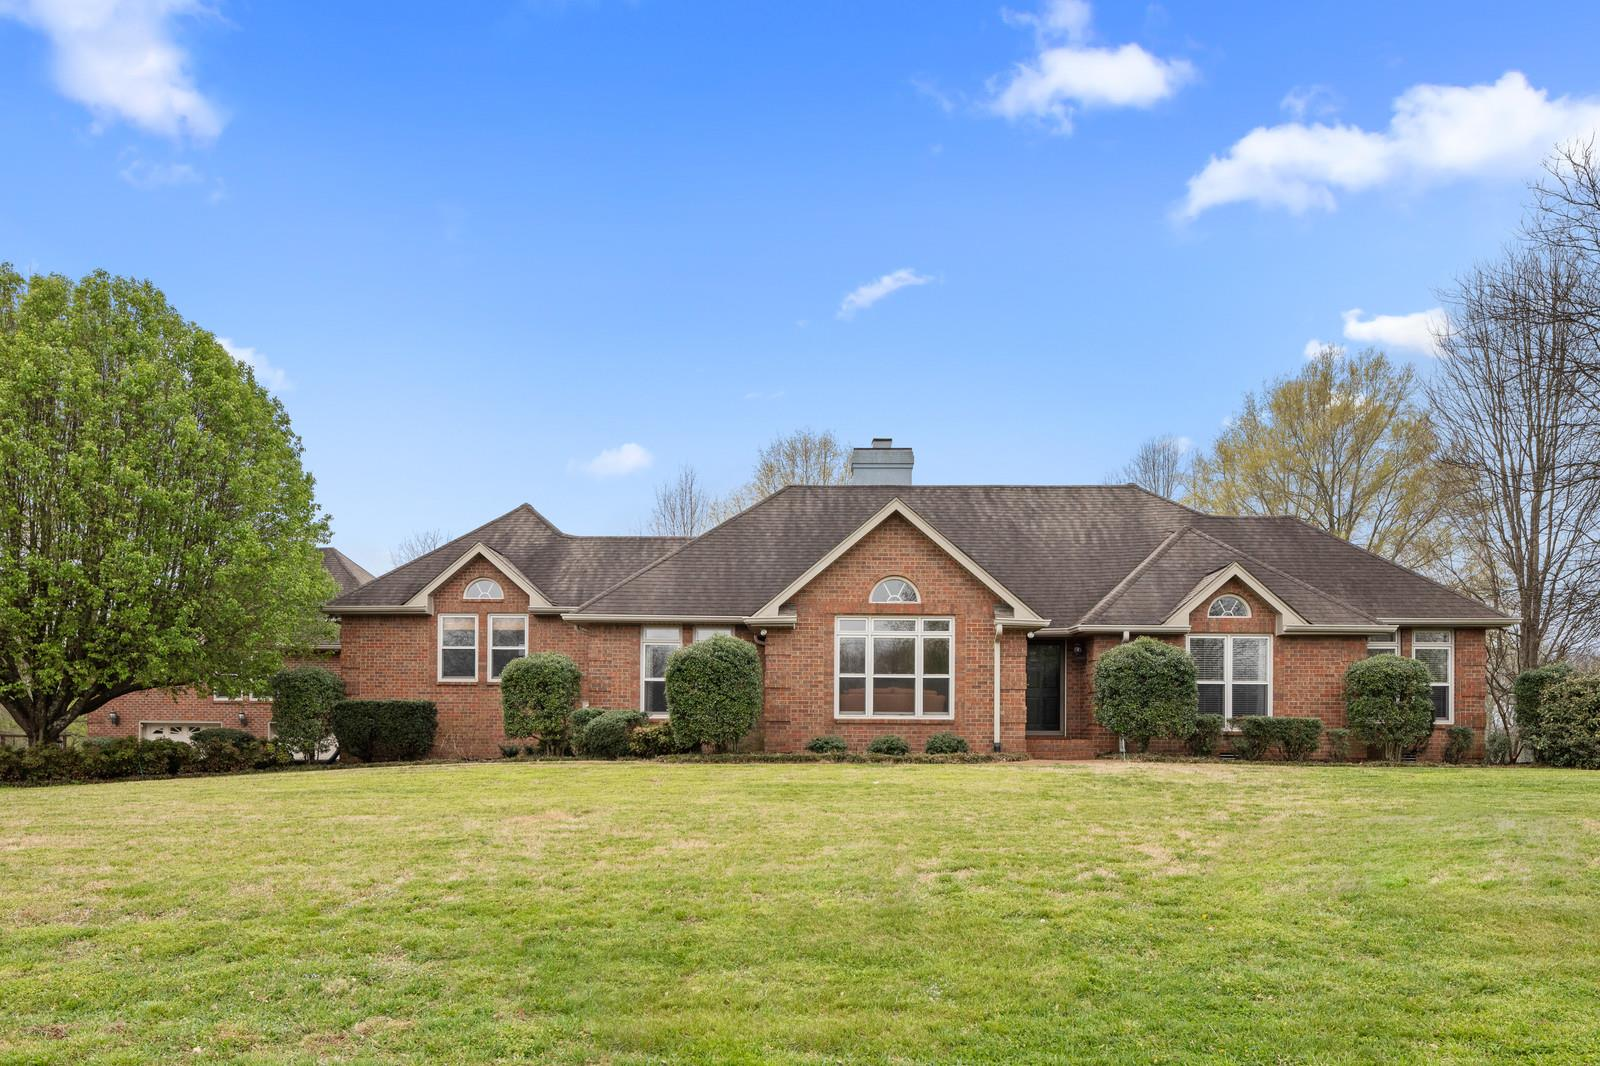 1013 Heritage Woods Dr, Hendersonville, Tennessee